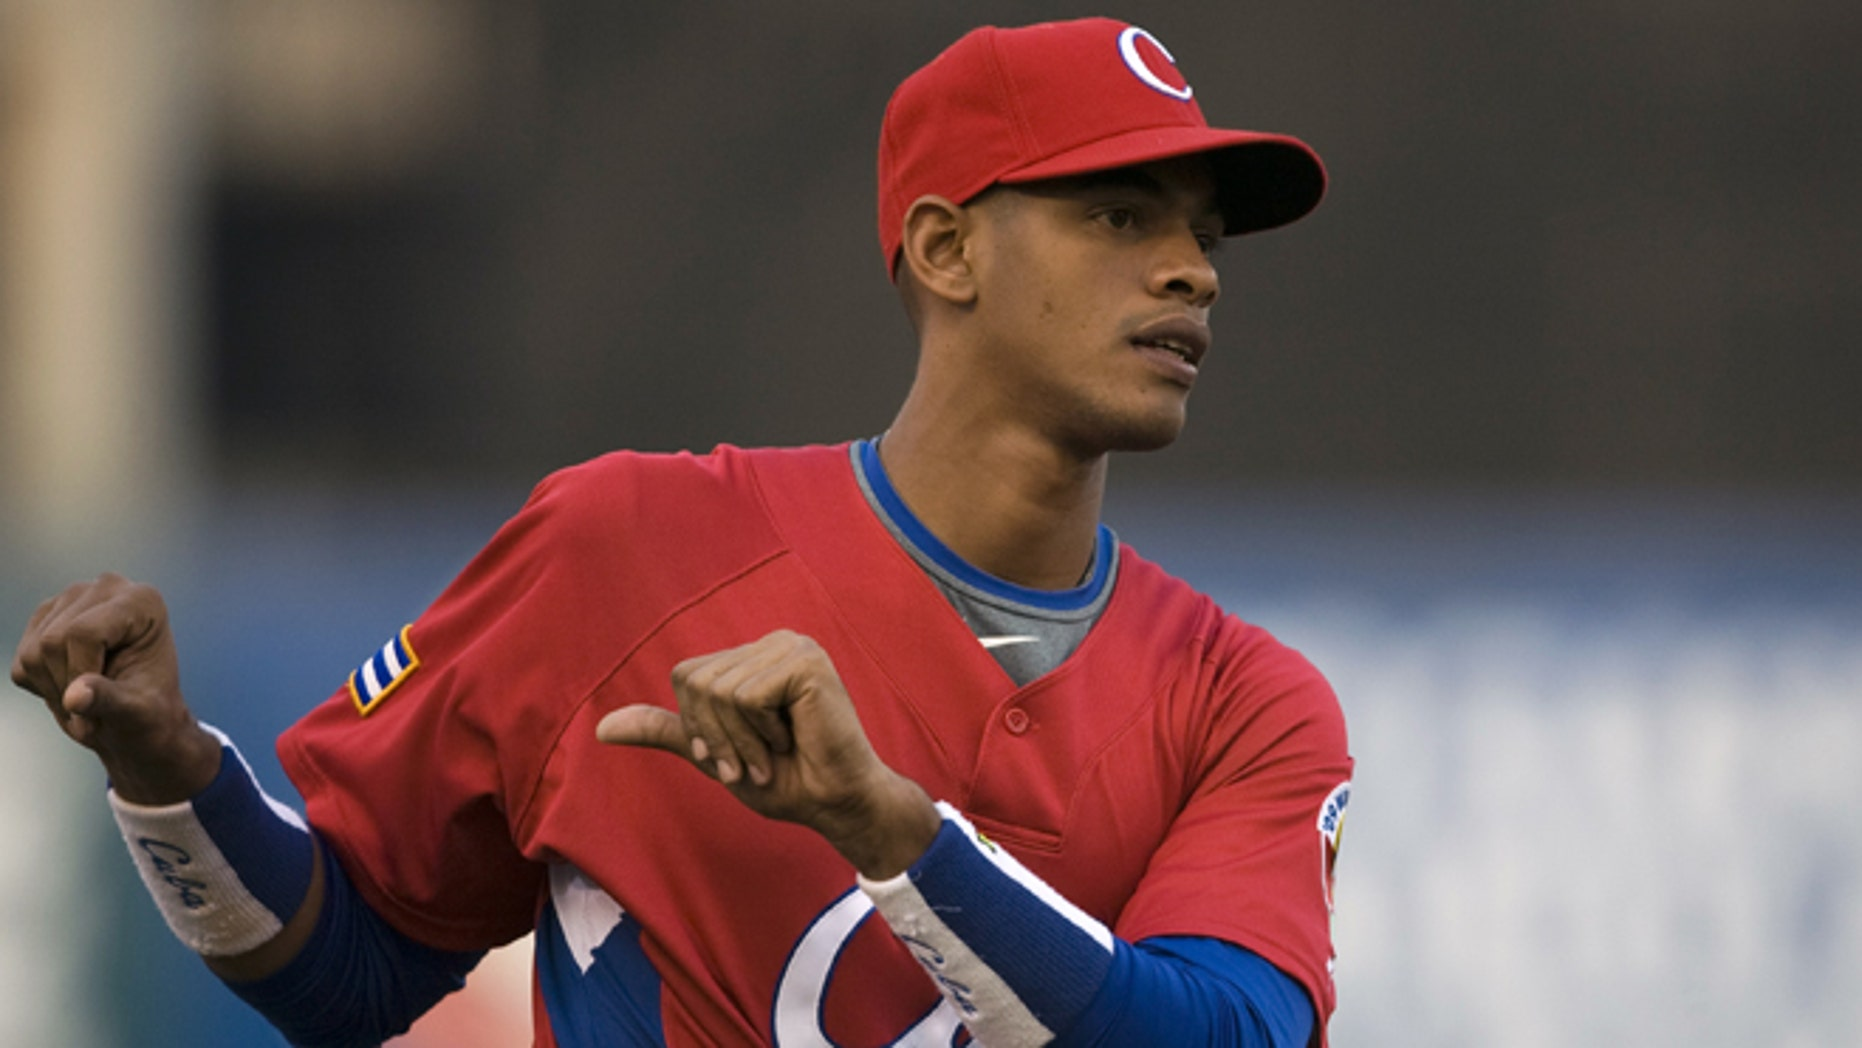 FILE - In this March 10, 2009, file photo, Cuba's Hector Olivera attends training before a World Baseball Classic game against Australia in Mexico City. Hector Olivera and the Los Angeles Dodgers have agreed to a $62.5 million, six-year contract, agent Greg Genske said. The agreement includes a $28 million signing bonus, Genske said Tuesday, March 24, 2015.(AP Photo/Claudio Cruz, File)